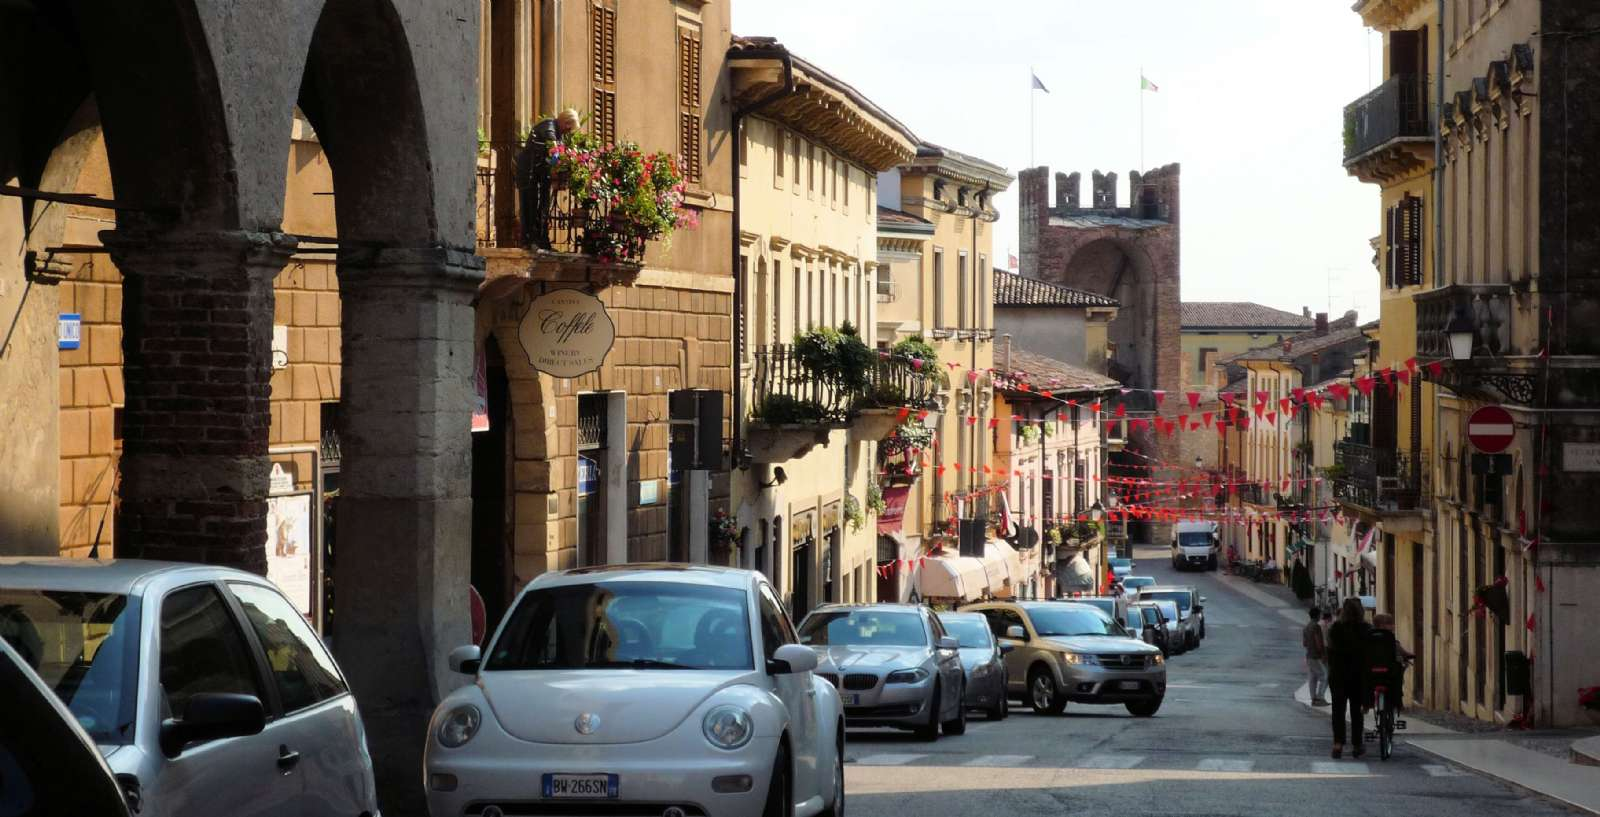 Soave bymidte